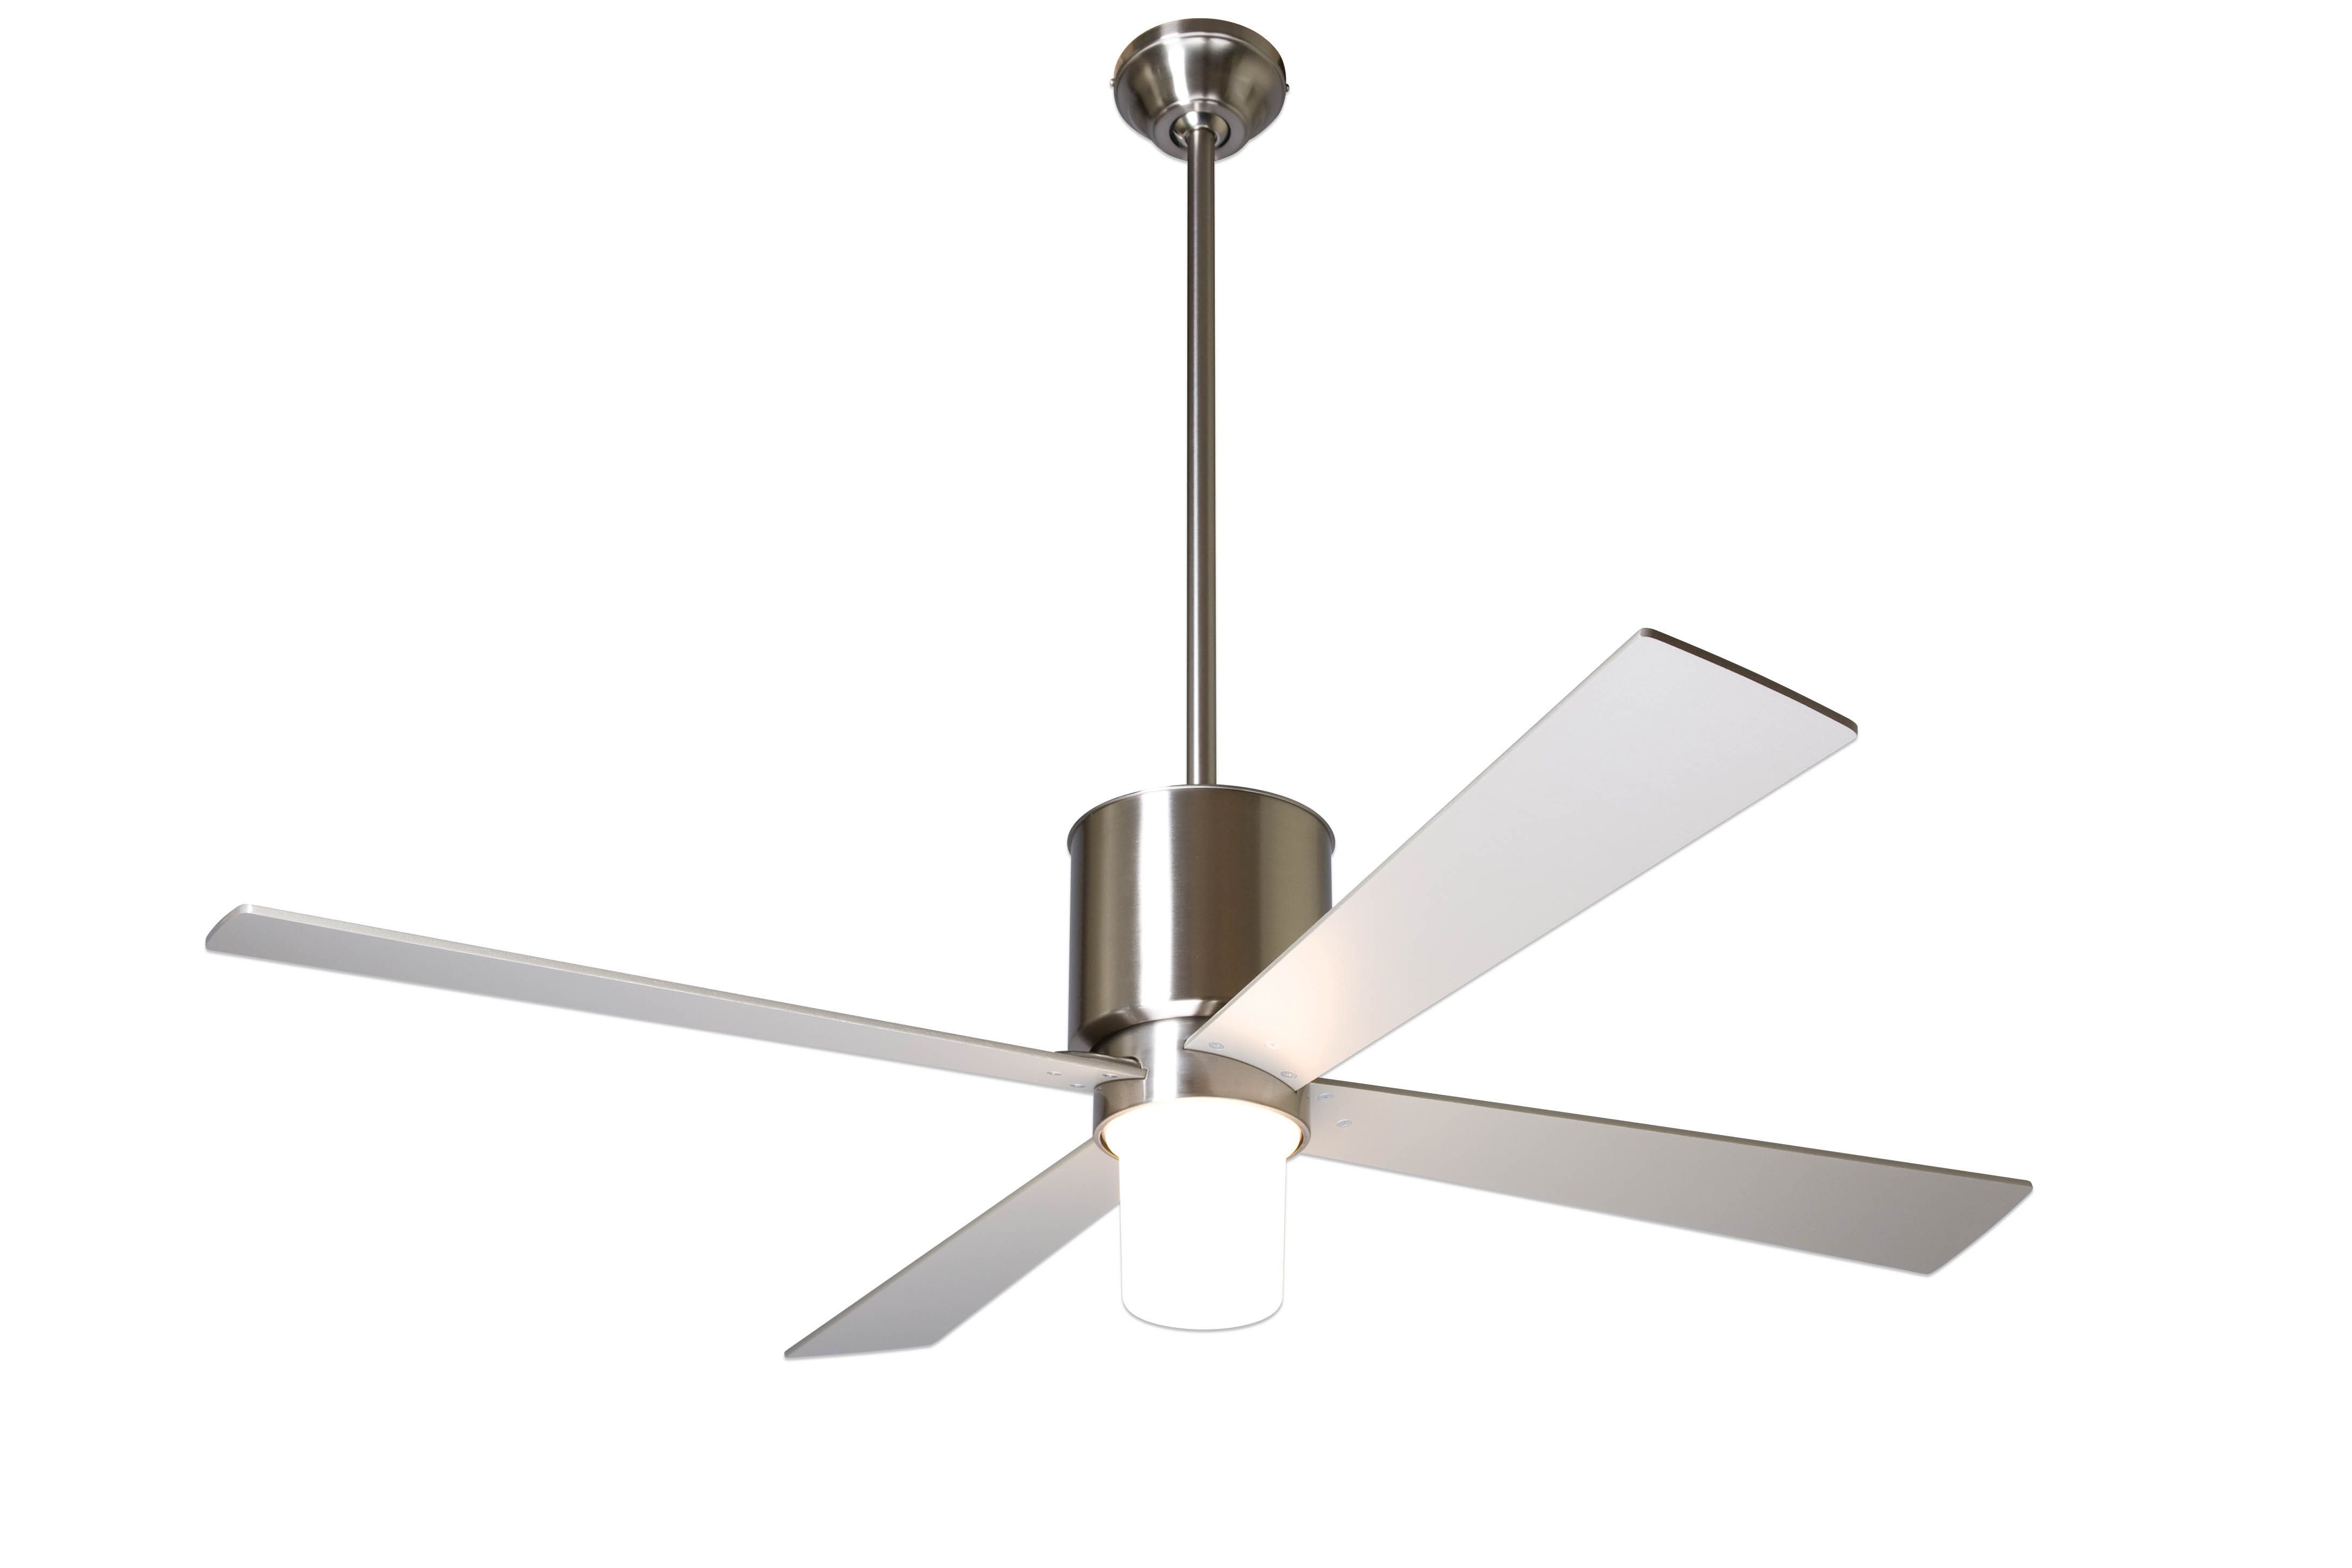 Modern Ceiling Fans With Bright Lights Https Www Otoseriilan Com Fan Light Ceiling Fan Ceiling Fan With Light Ceiling fans with bright lights